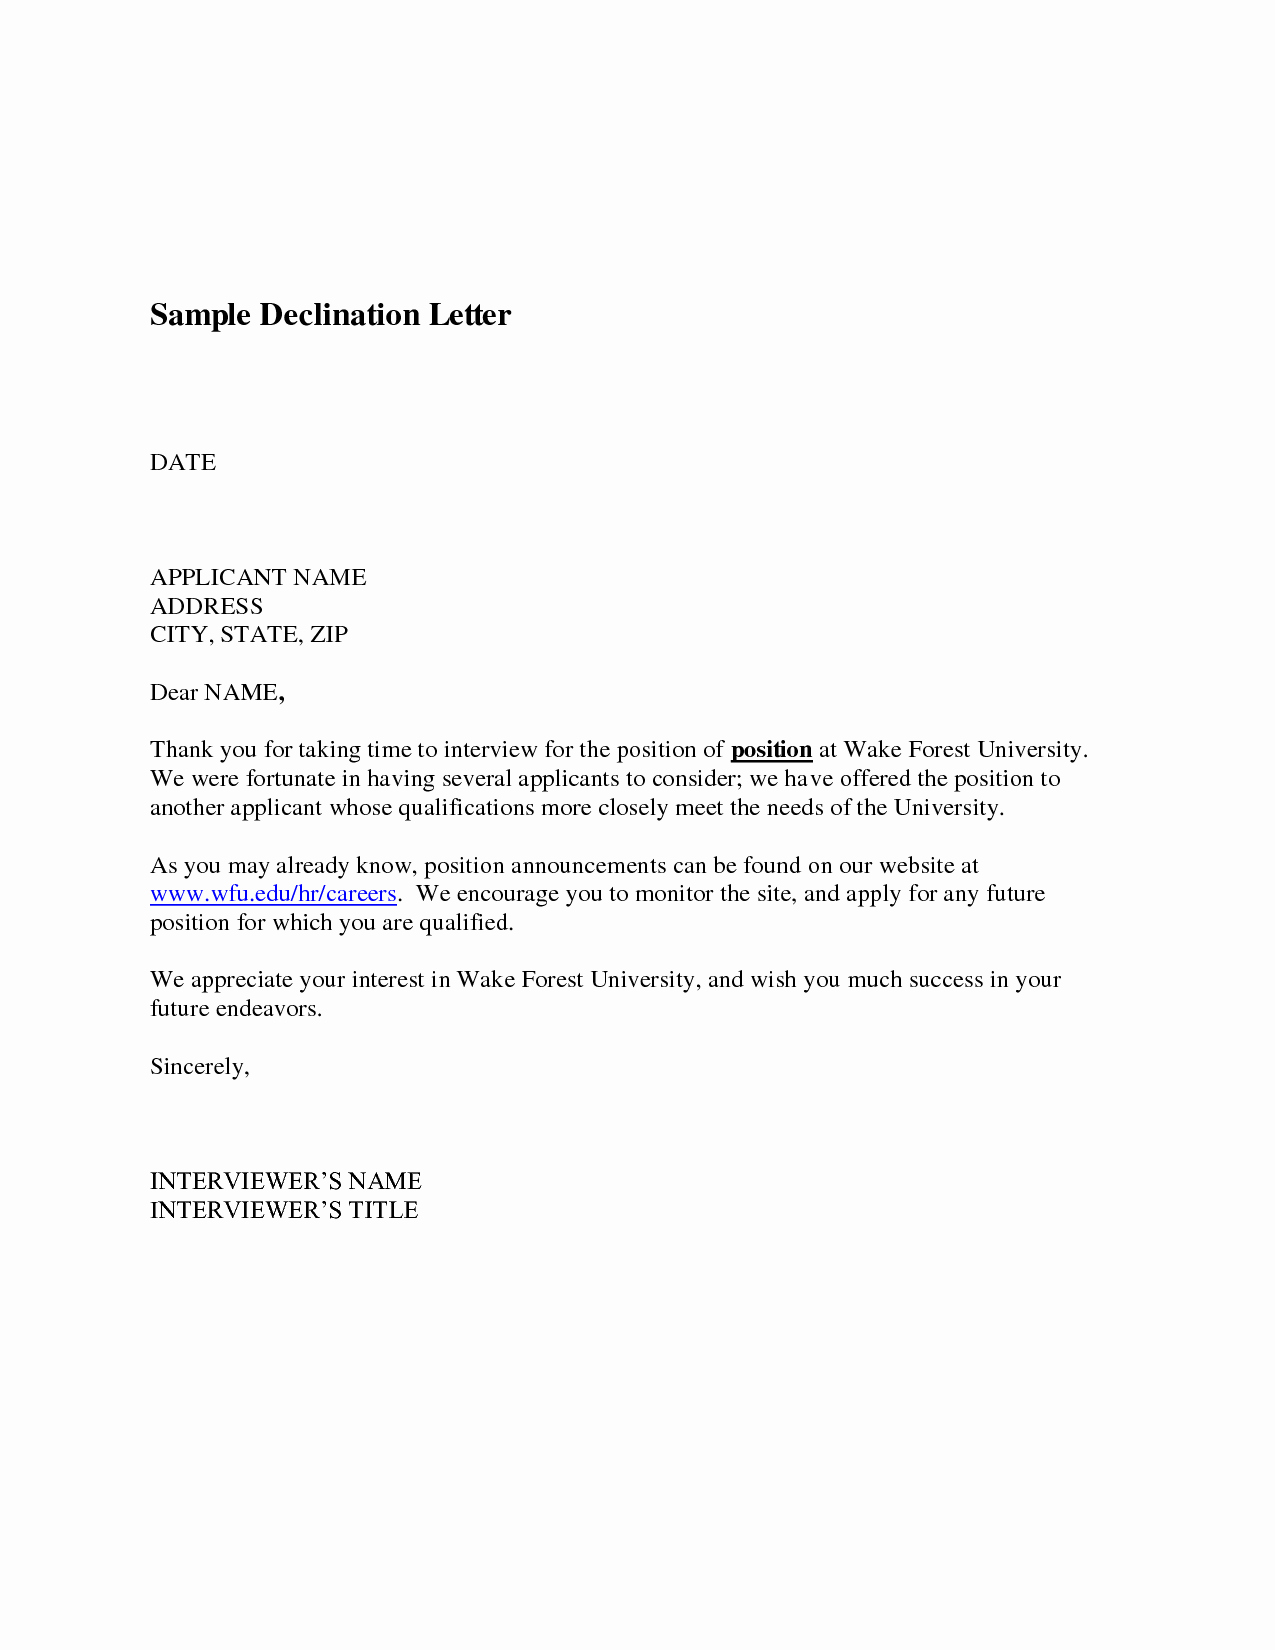 Free Job Cover Letter Template Elegant What to Include In A Cover Letter for A Job Application